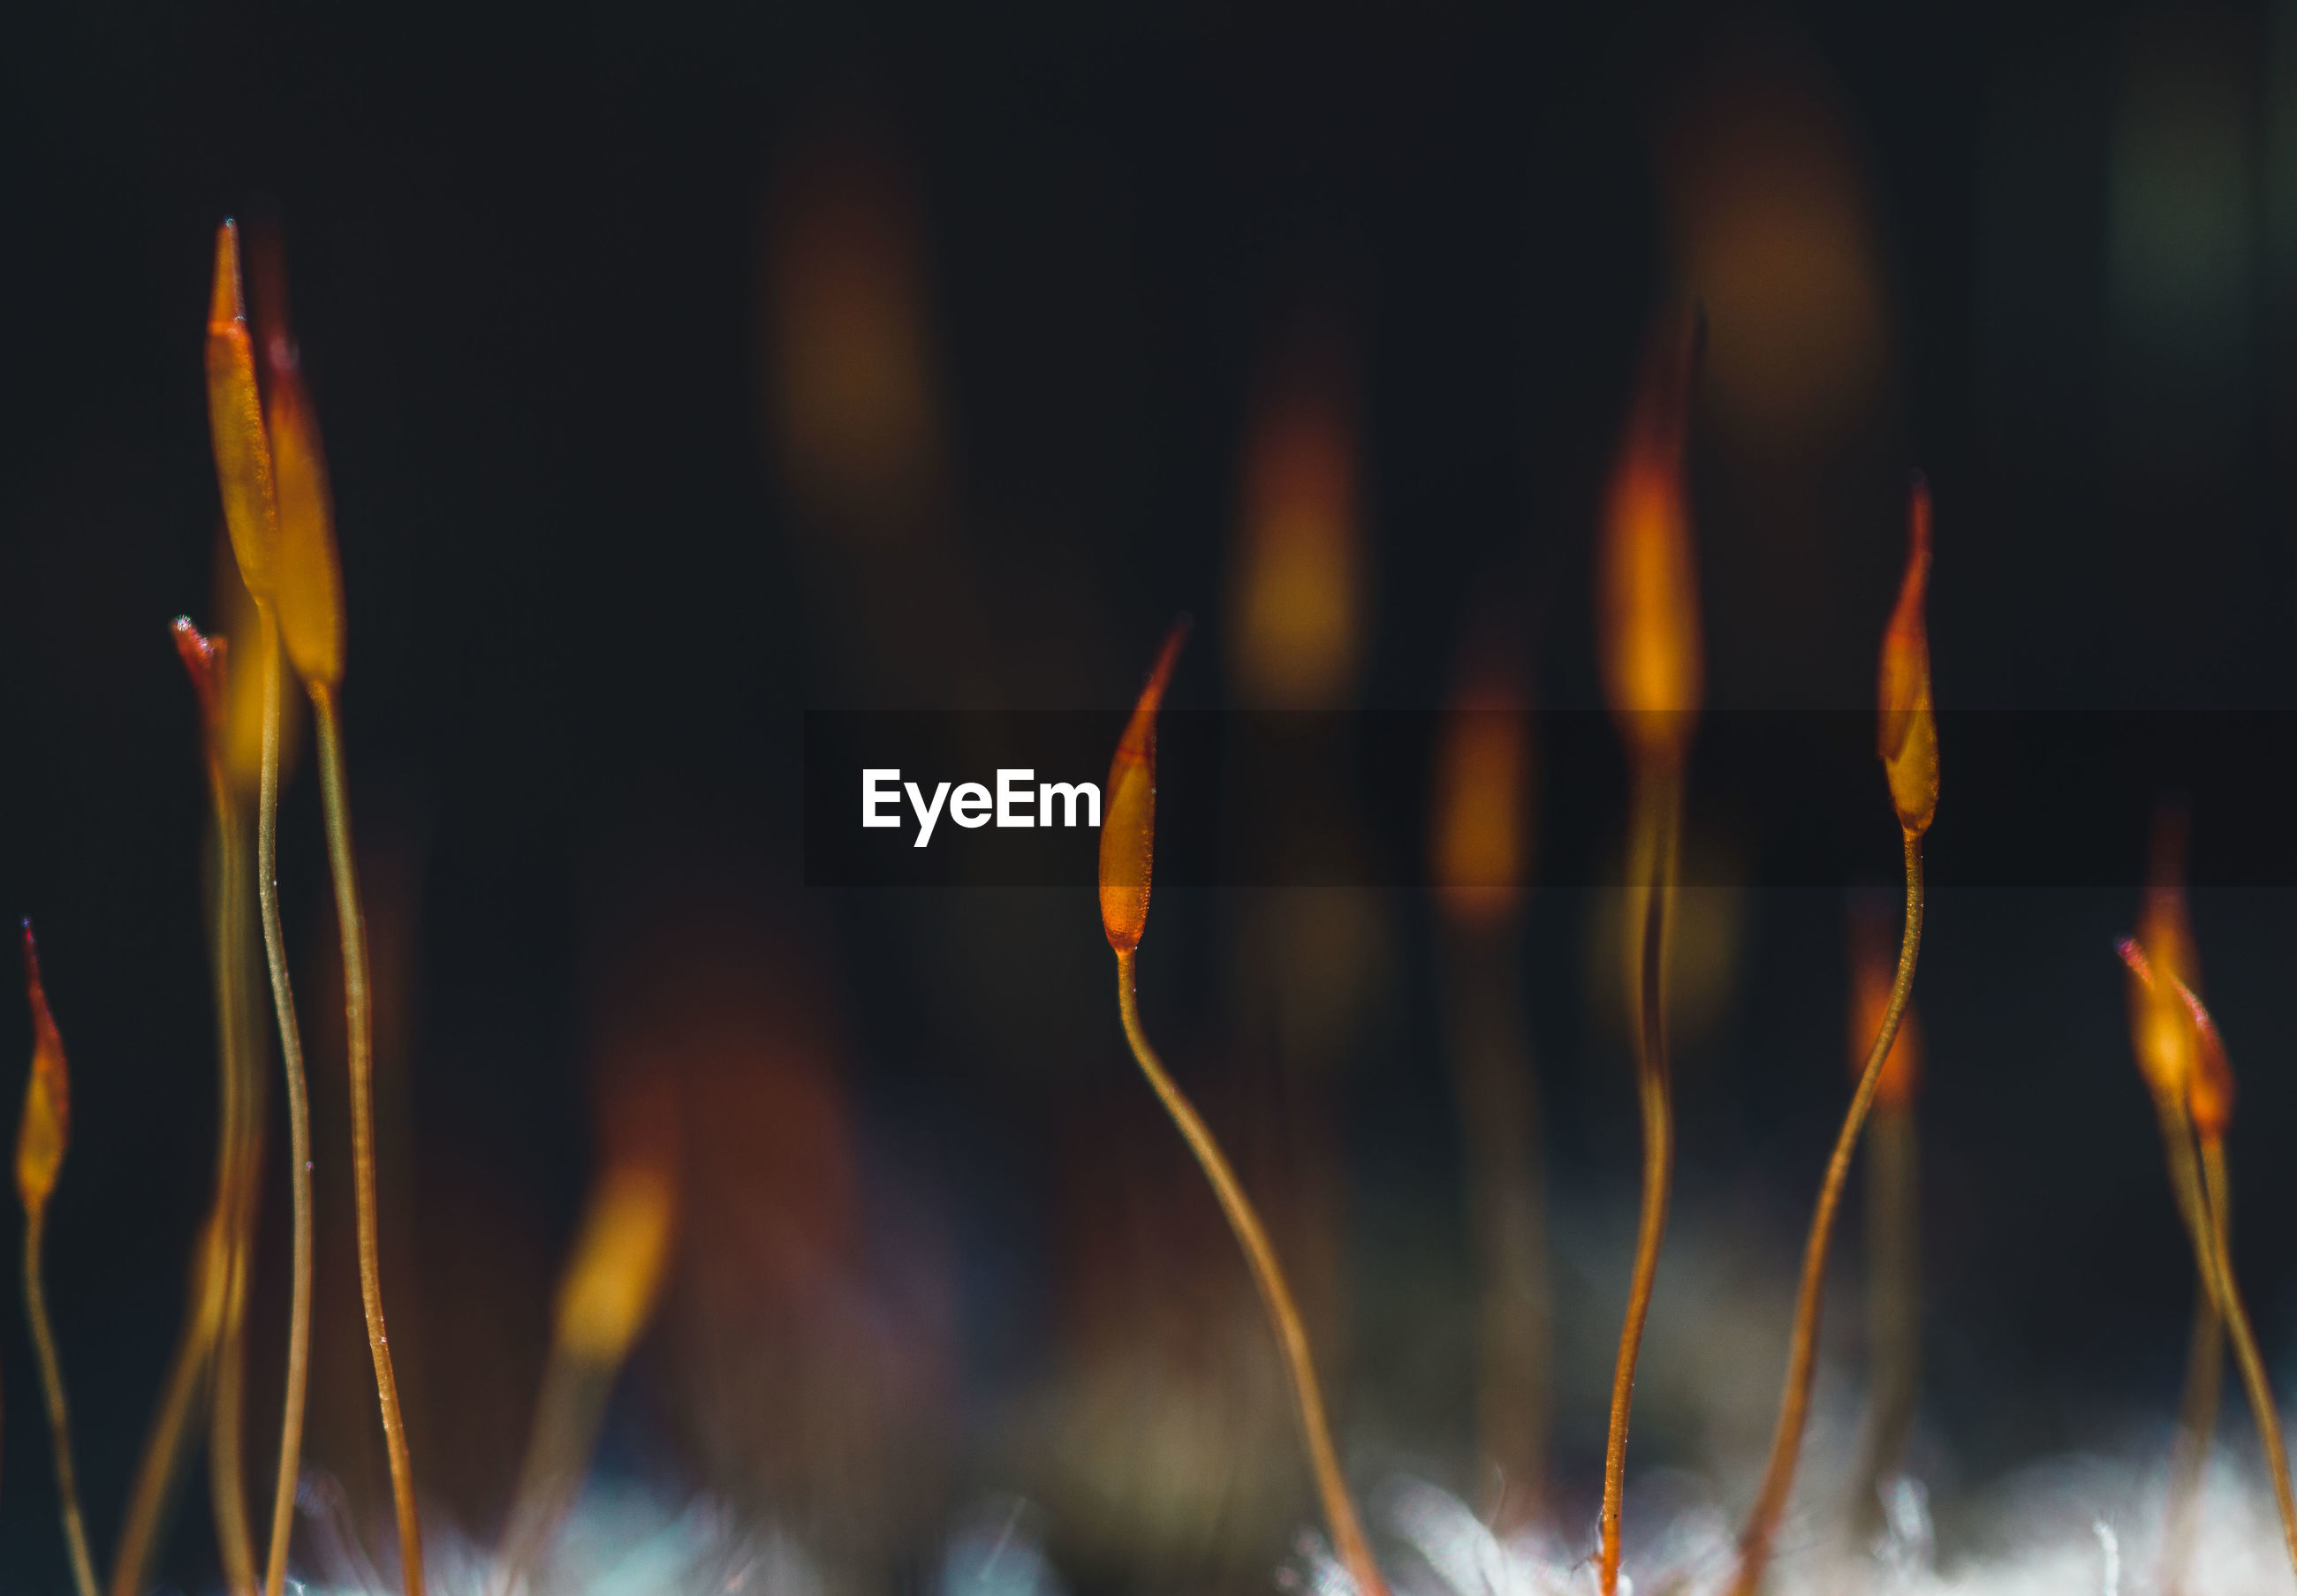 Close-up of fire against blurred background